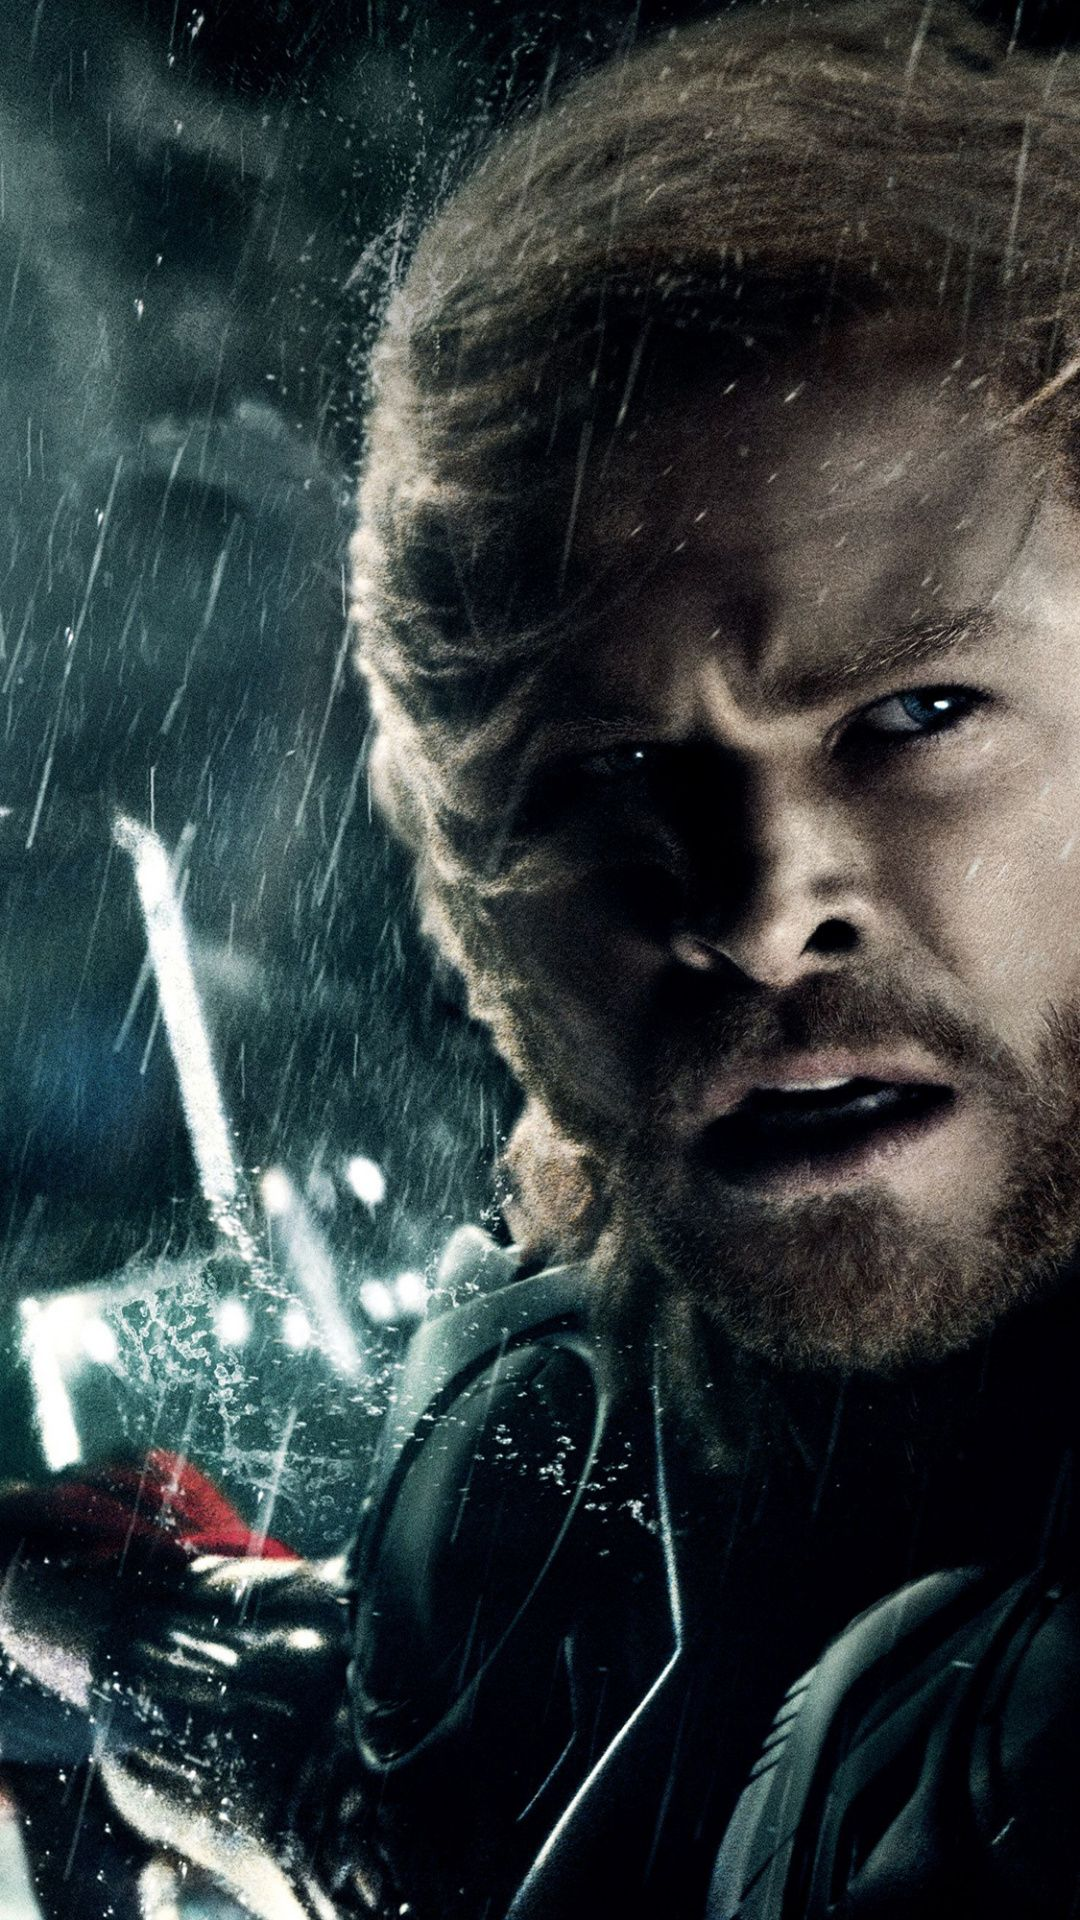 Wallpapers film, darkness, action film, thor, water